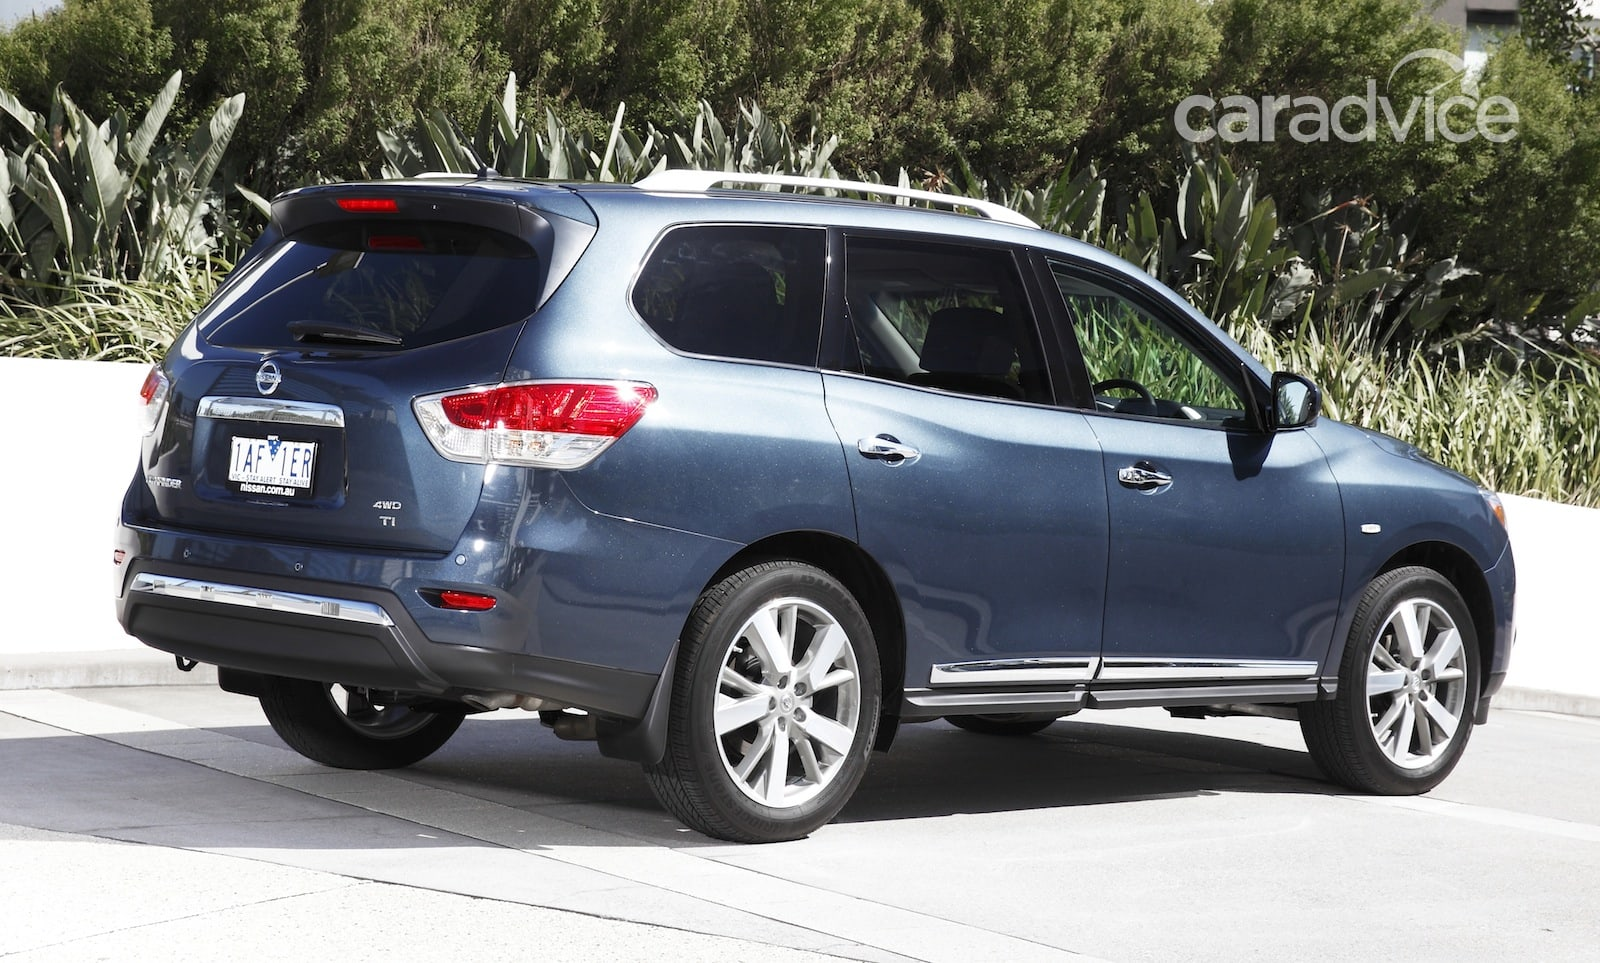 Nissan Pathfinder Pricing And Specifications Caradvice